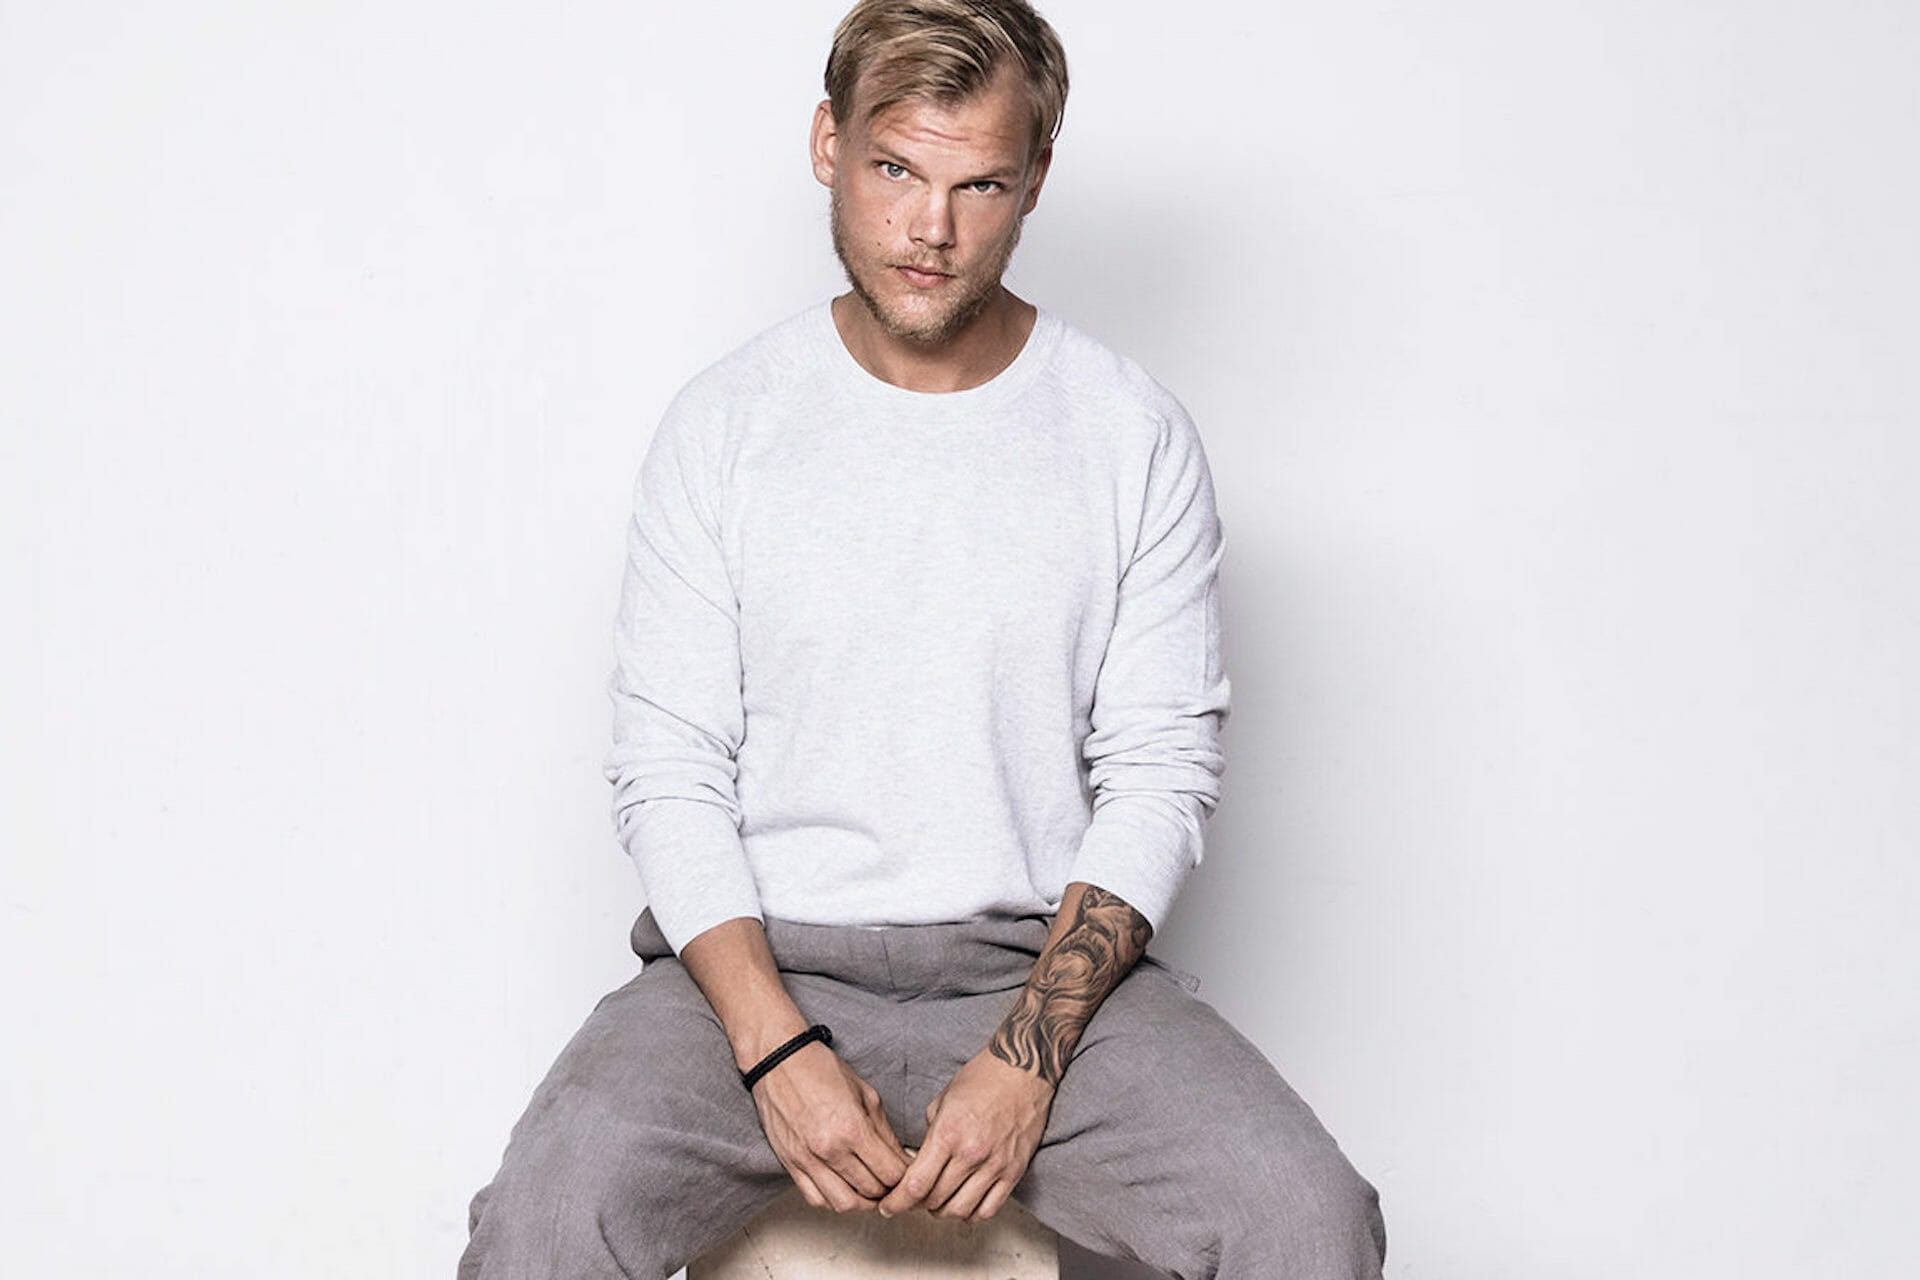 Avicii tribute museum to open in Stockholm in 2021Avicii True Stories Documentary Limited Theatrical Run